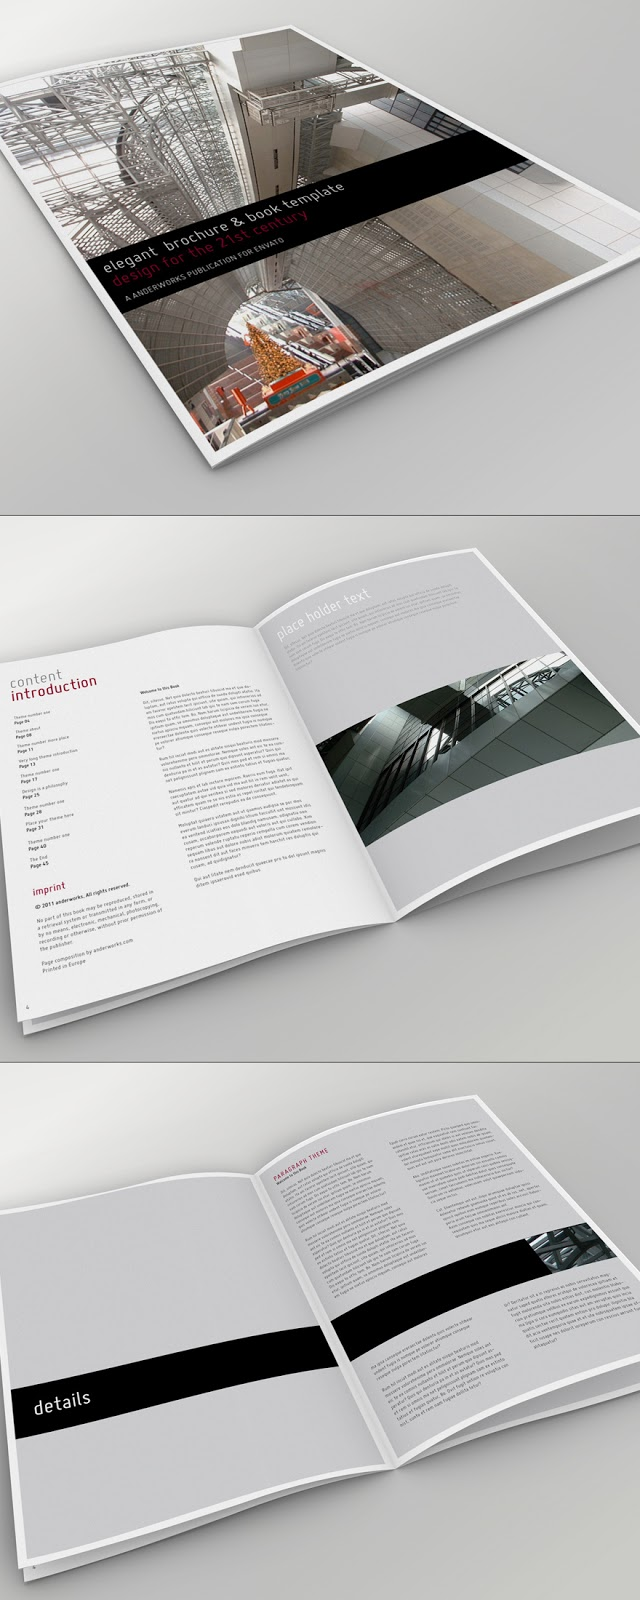 Brochure booklet templates brochure designs pics for Brochure booklet templates